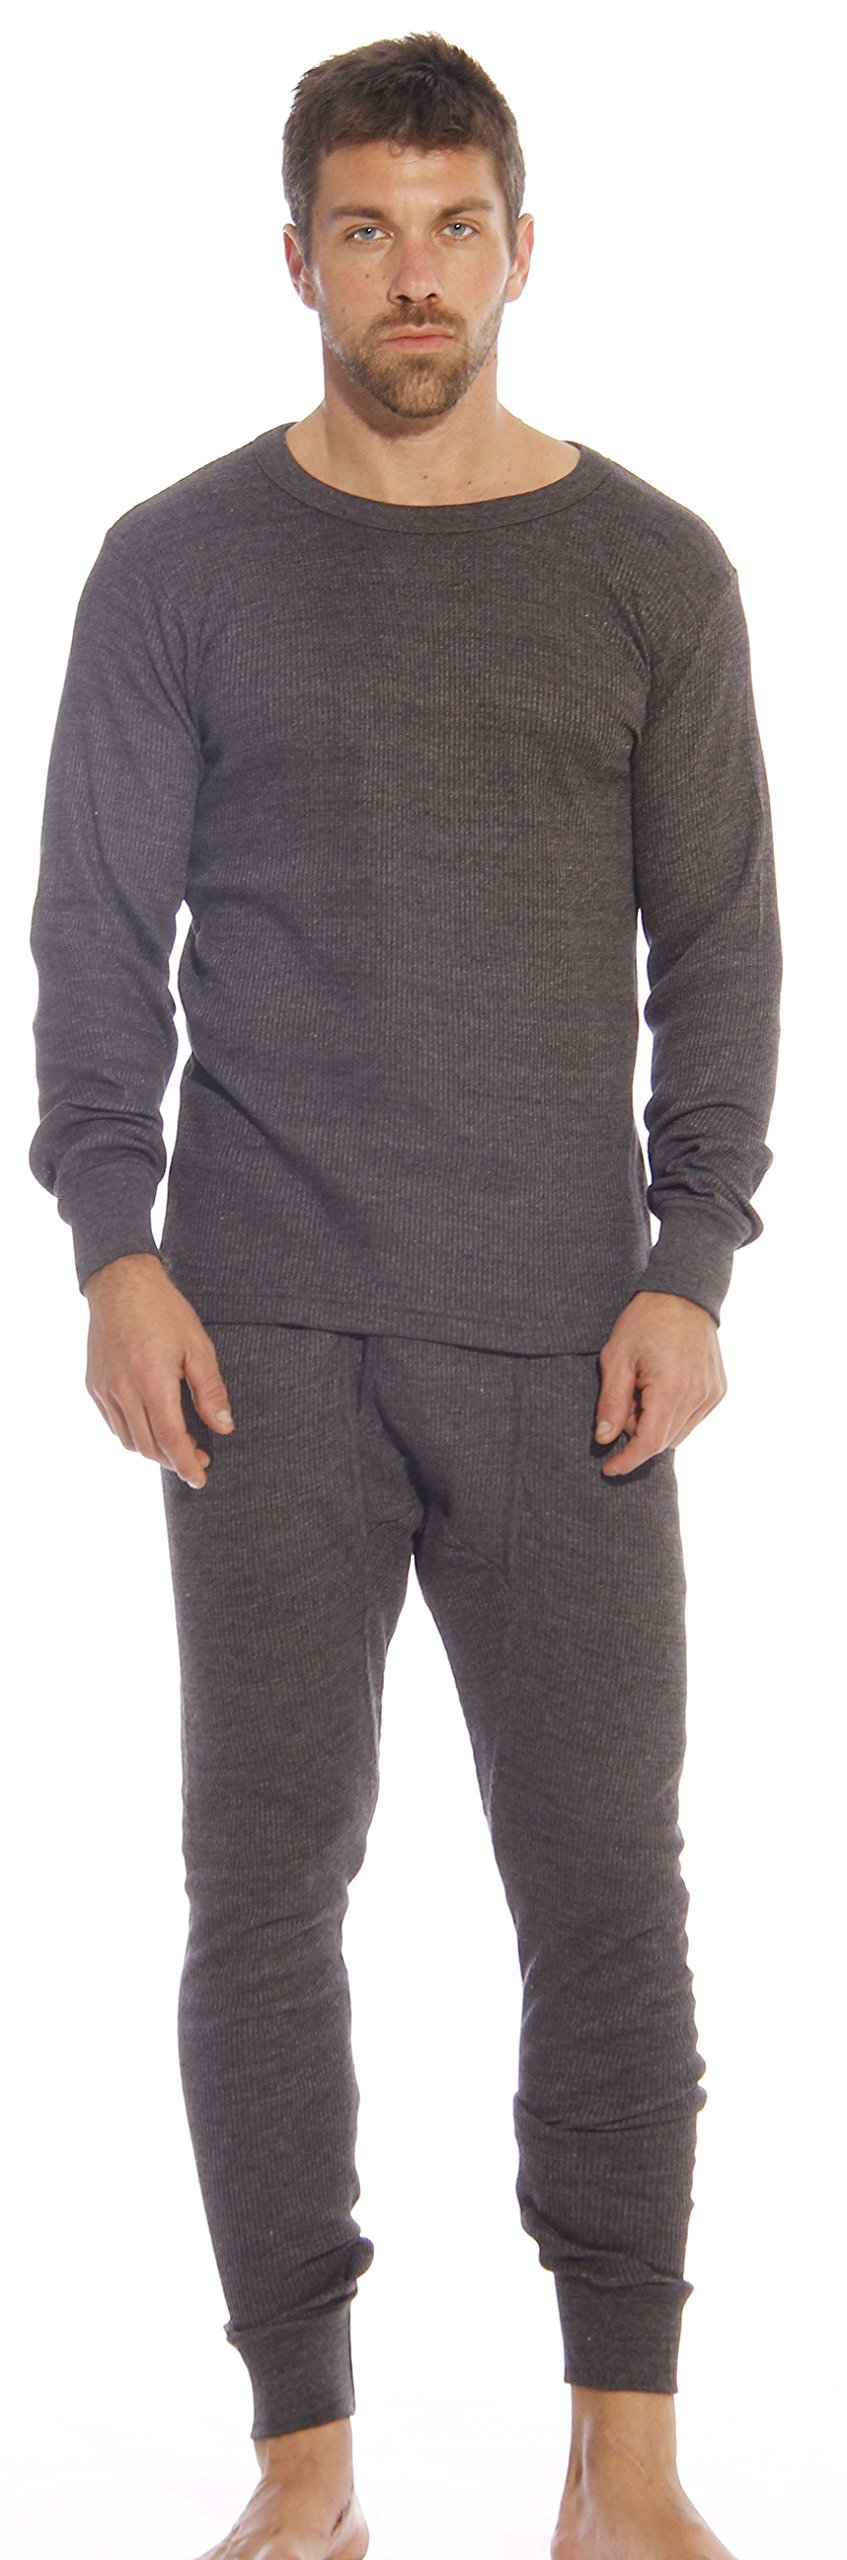 At The Buzzer Thermal Underwear Set for Men 95962-Charcoal-XL by At The Buzzer